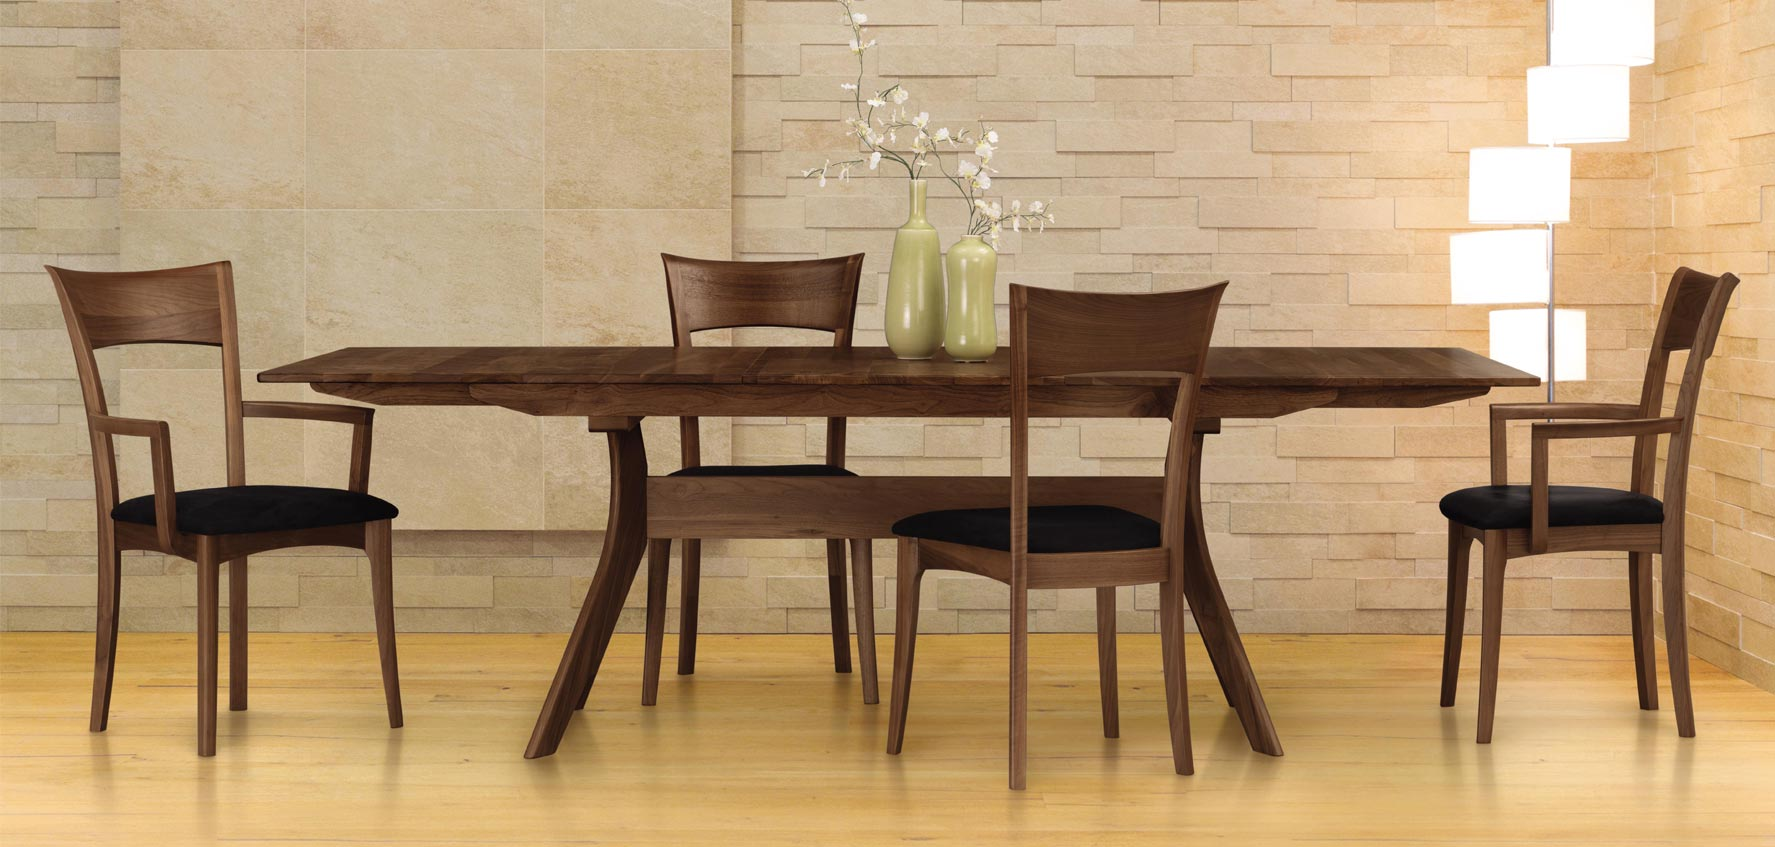 Copeland Dining Room Furniture On Sale